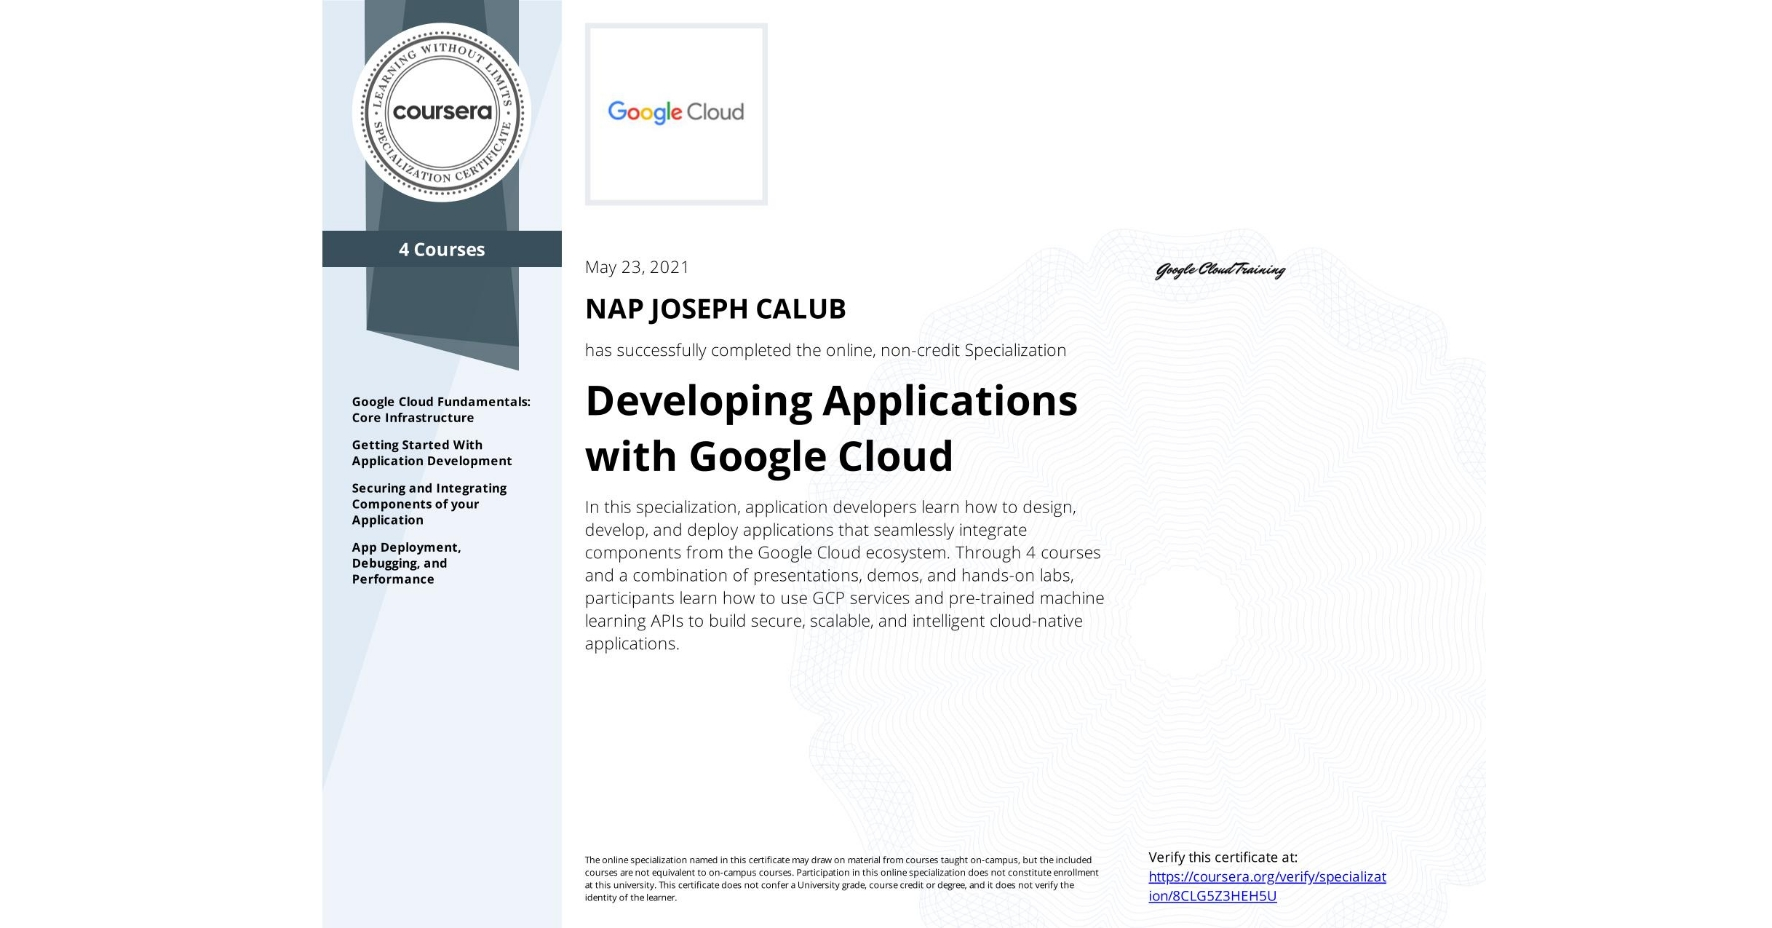 View certificate for NAP JOSEPH  CALUB, Developing Applications with Google Cloud, offered through Coursera. In this specialization, application developers learn how to design, develop, and deploy applications that seamlessly integrate components from the Google Cloud ecosystem. Through 4 courses and a combination of presentations, demos, and hands-on labs, participants learn how to use GCP services and pre-trained machine learning APIs to build secure, scalable, and intelligent cloud-native applications.